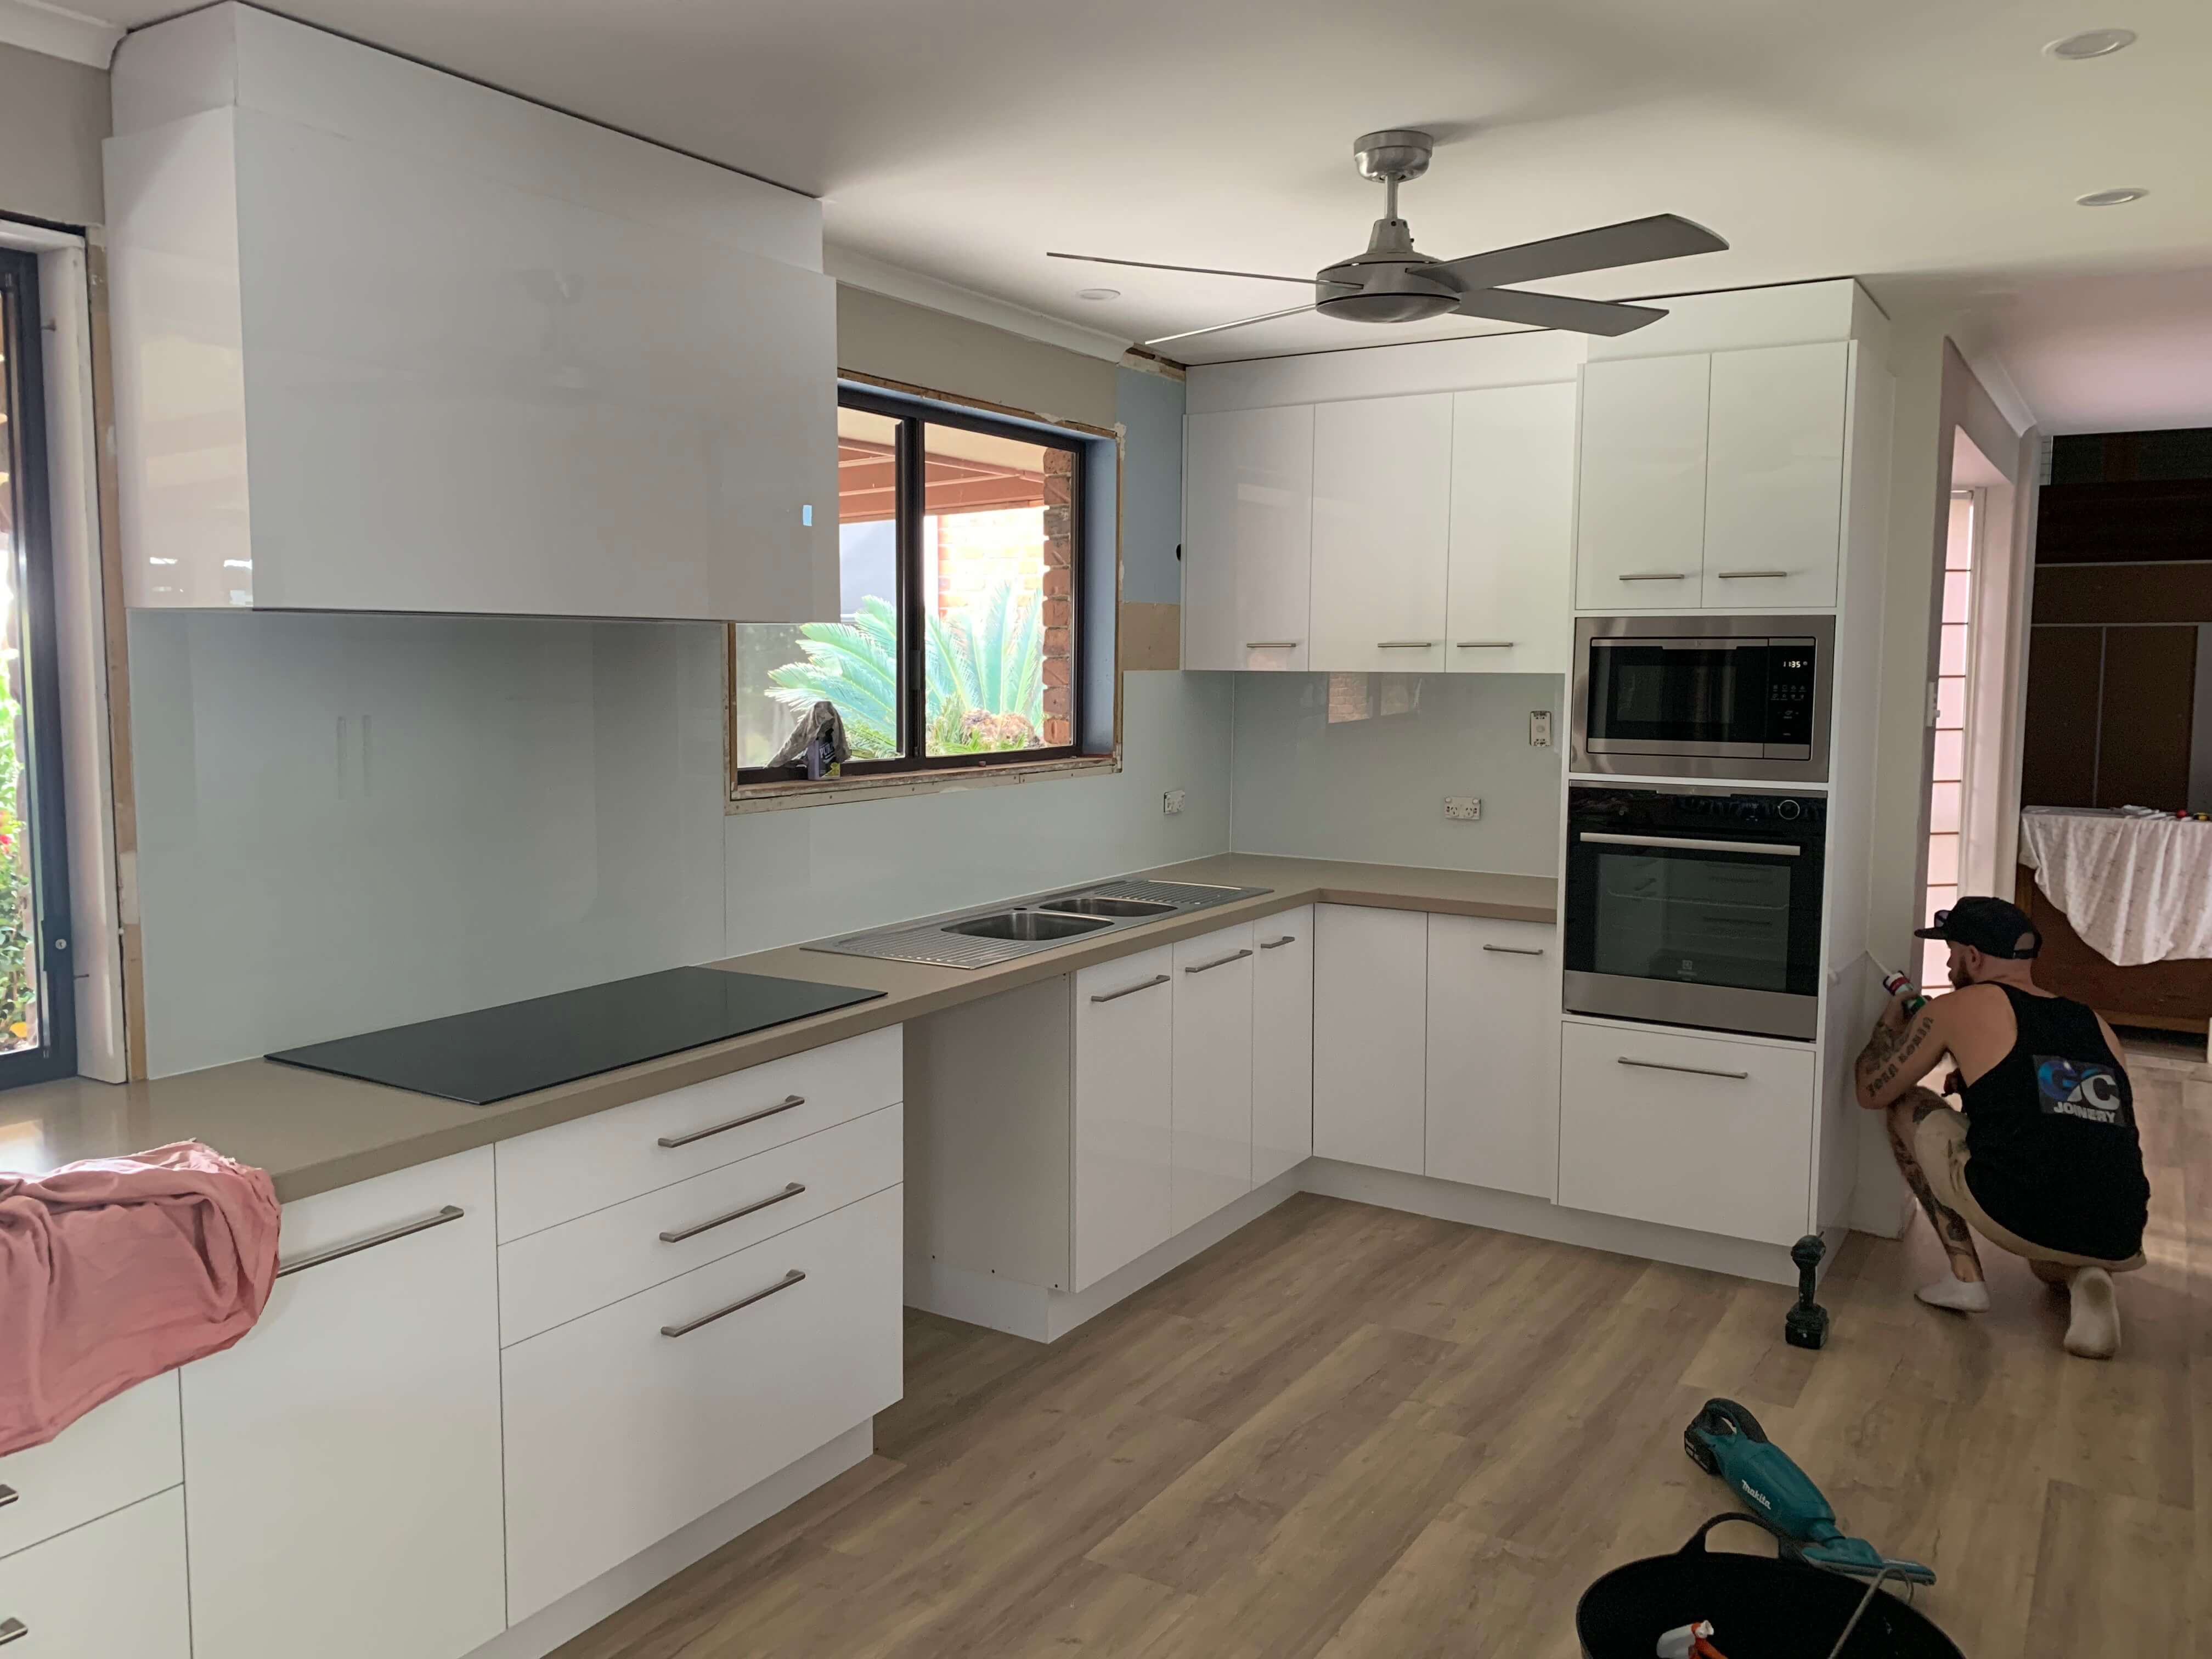 New Kitchen Installation By Grant Cole Joinery